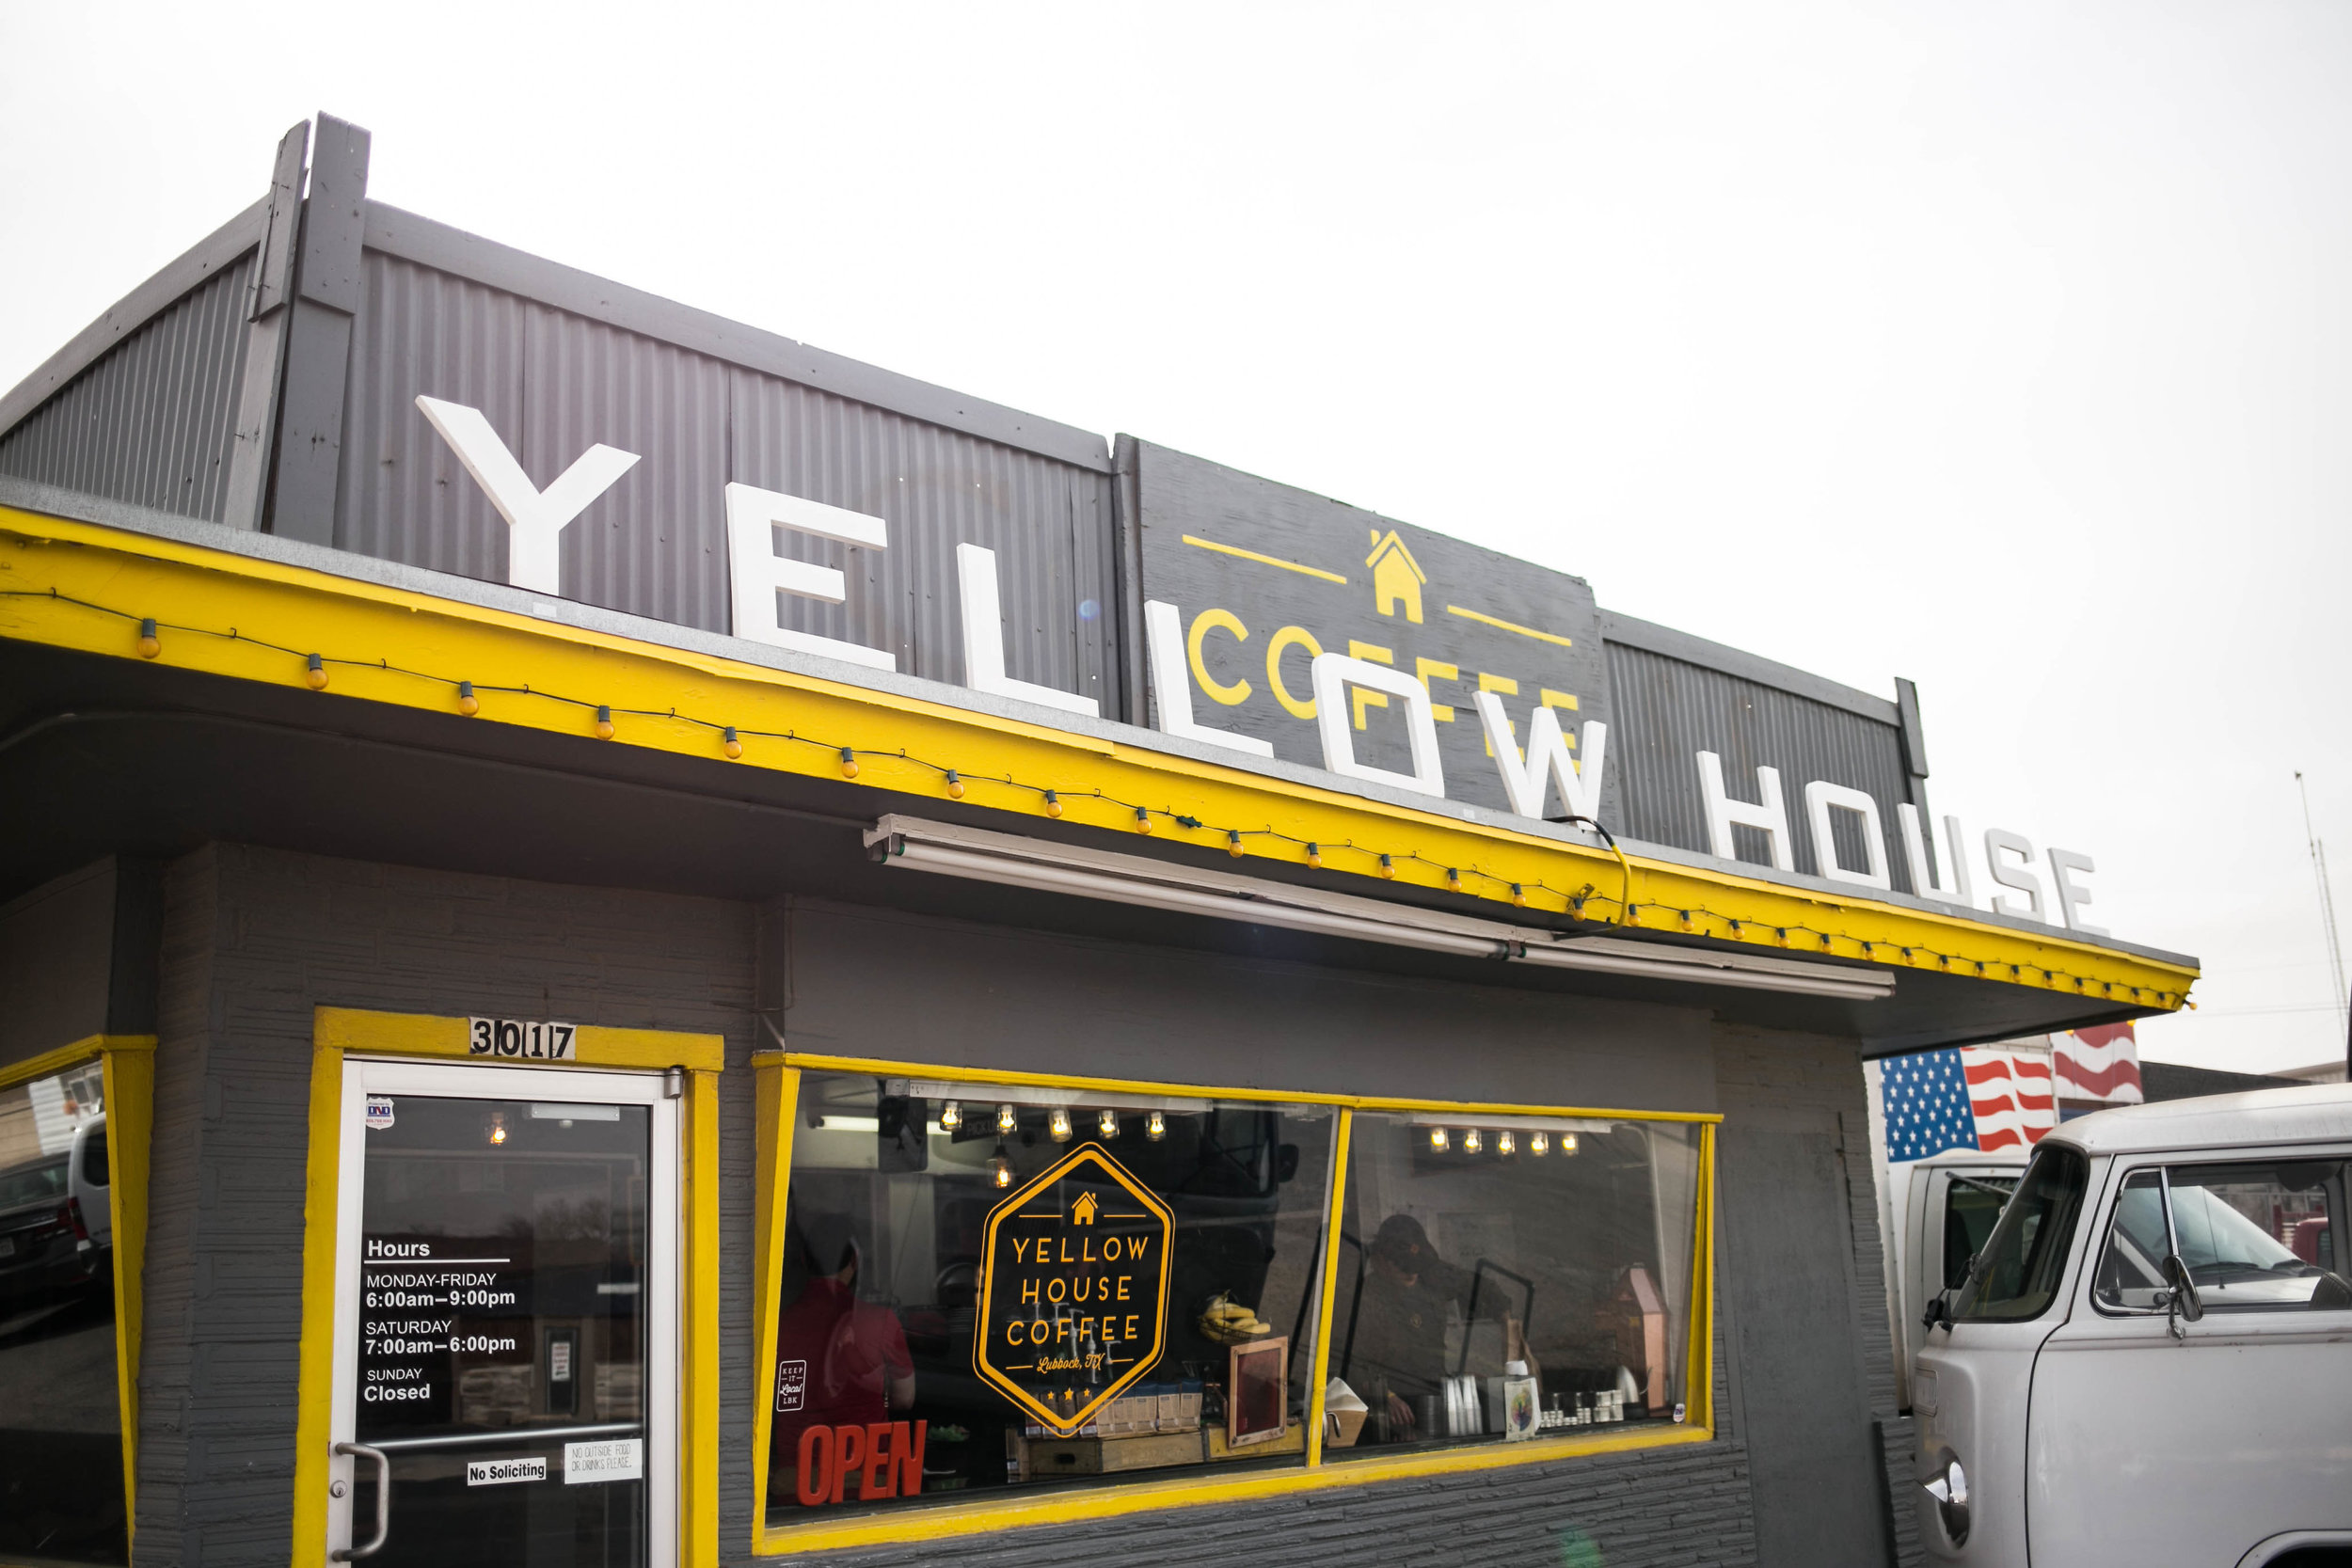 Store info - Phone Number - 806-790-54622Email Address- yellowhousecoffeellc@gmail.comLocation - 3017 34th StreetSocial Media Links -FacebookInstagramTwitterWebsite -http://yellowhousecoffee.com/Store Hours -Monday - Friday 6AM–9PMSaturday 7am-6pmSunday Closed